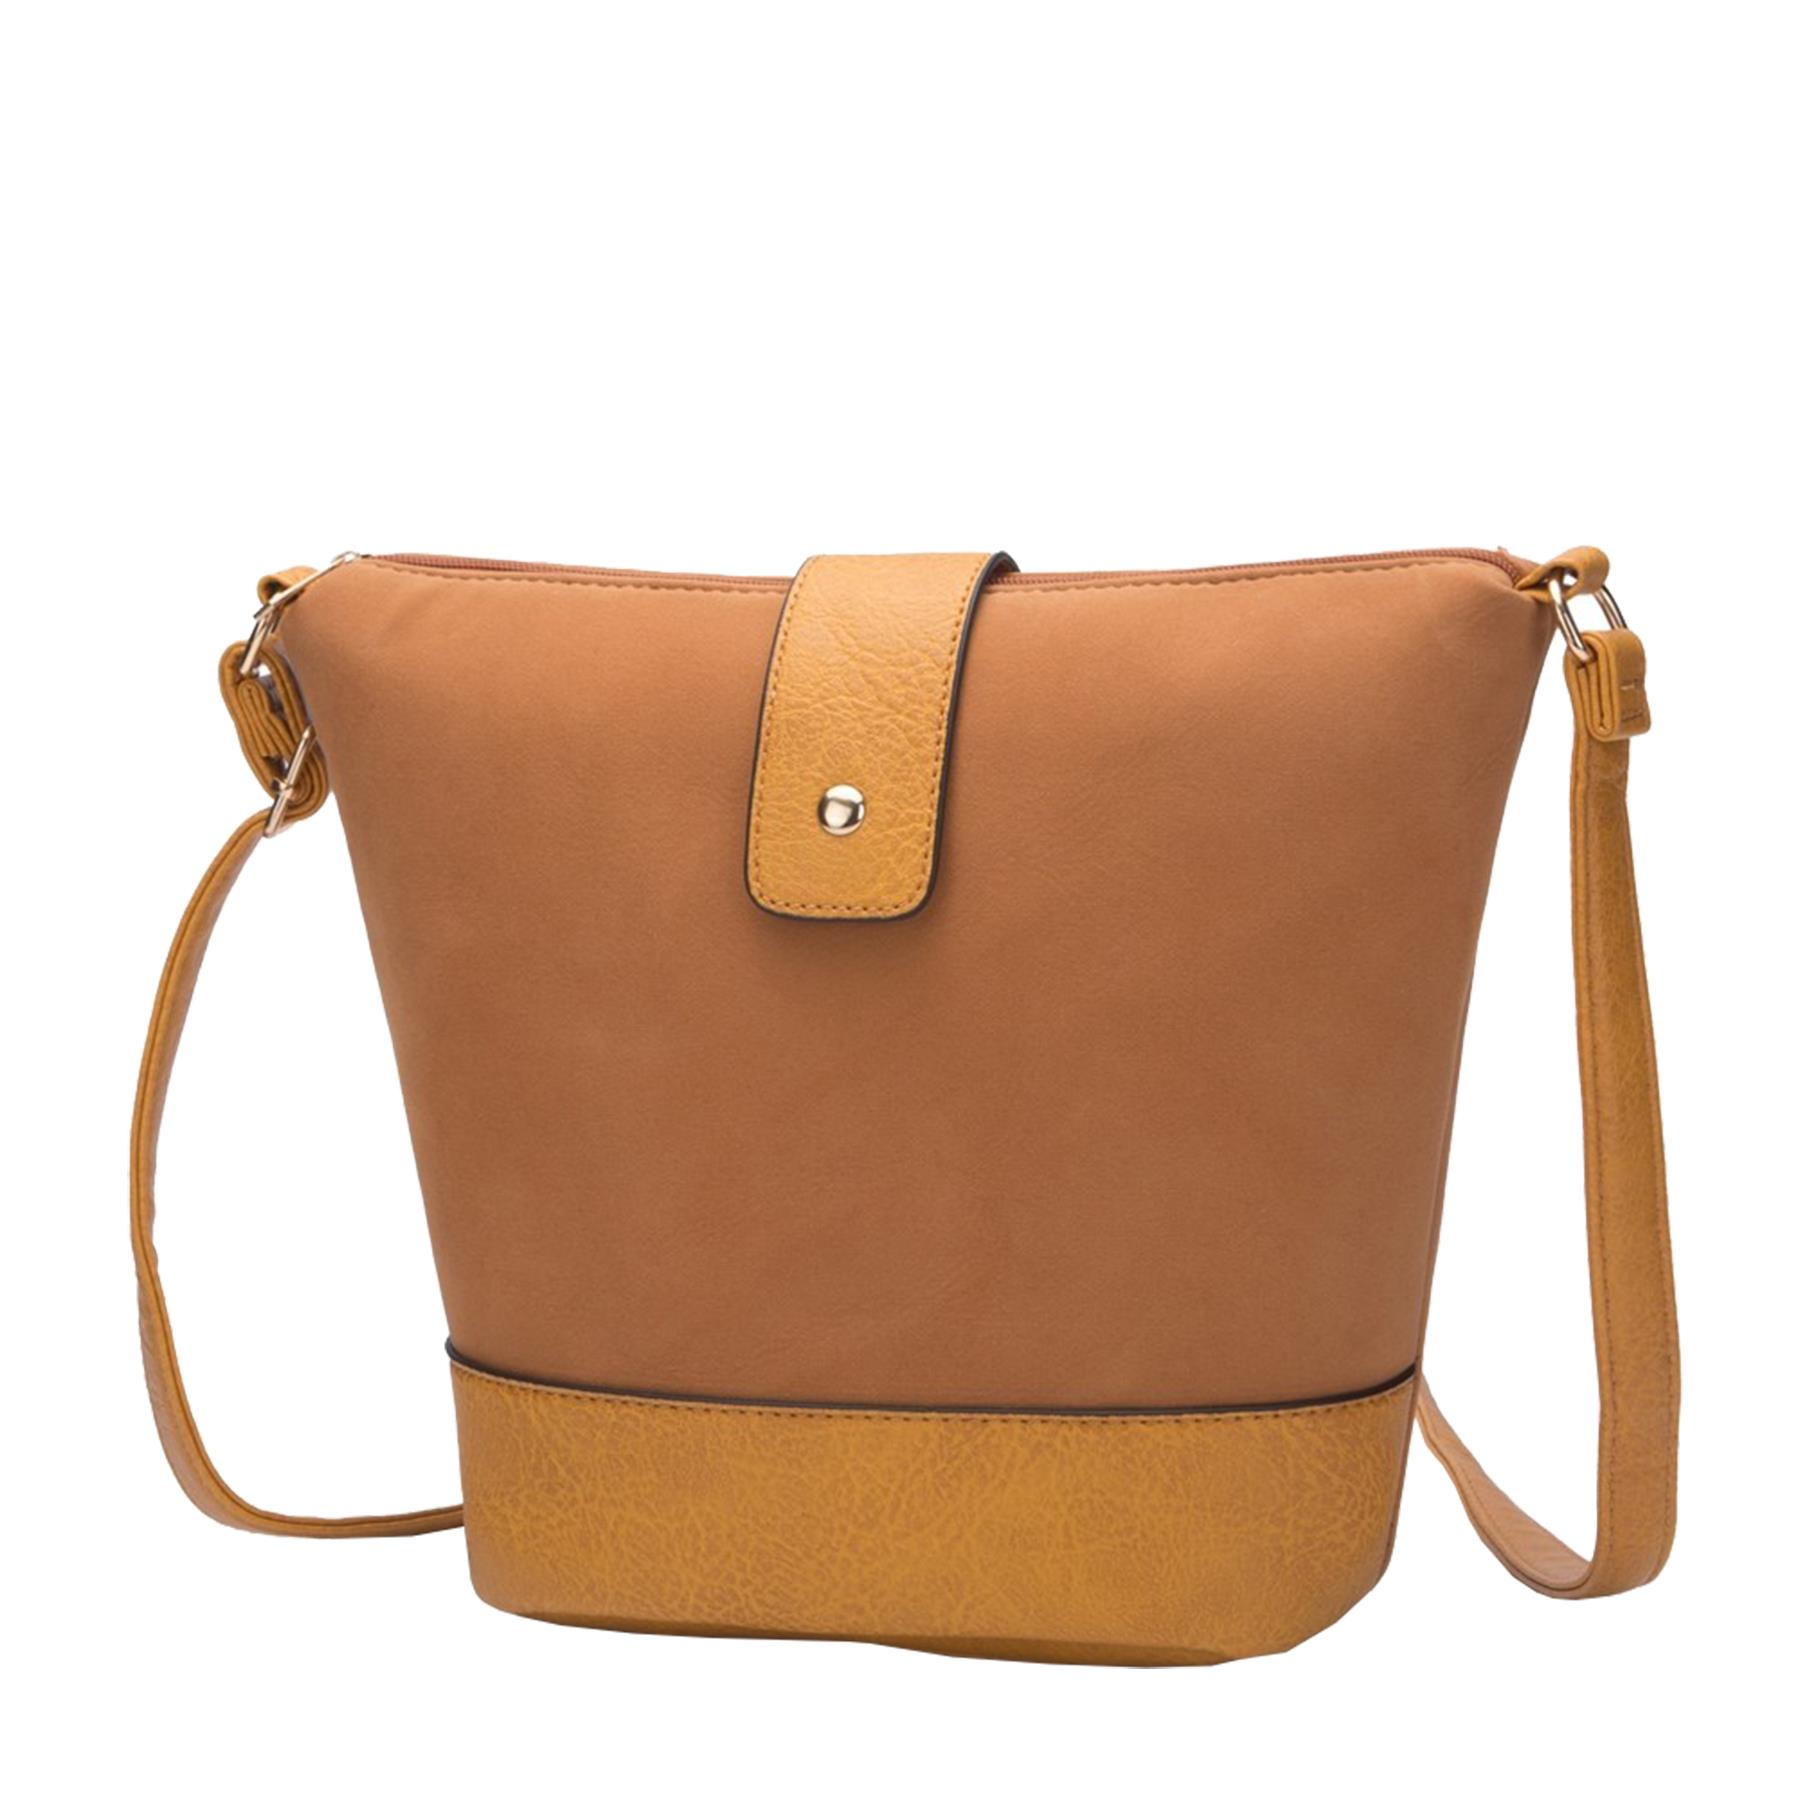 New-Ladies-Two-Toned-Faux-Leather-Fashion-Shoulder-Cross-Body-Bag thumbnail 12